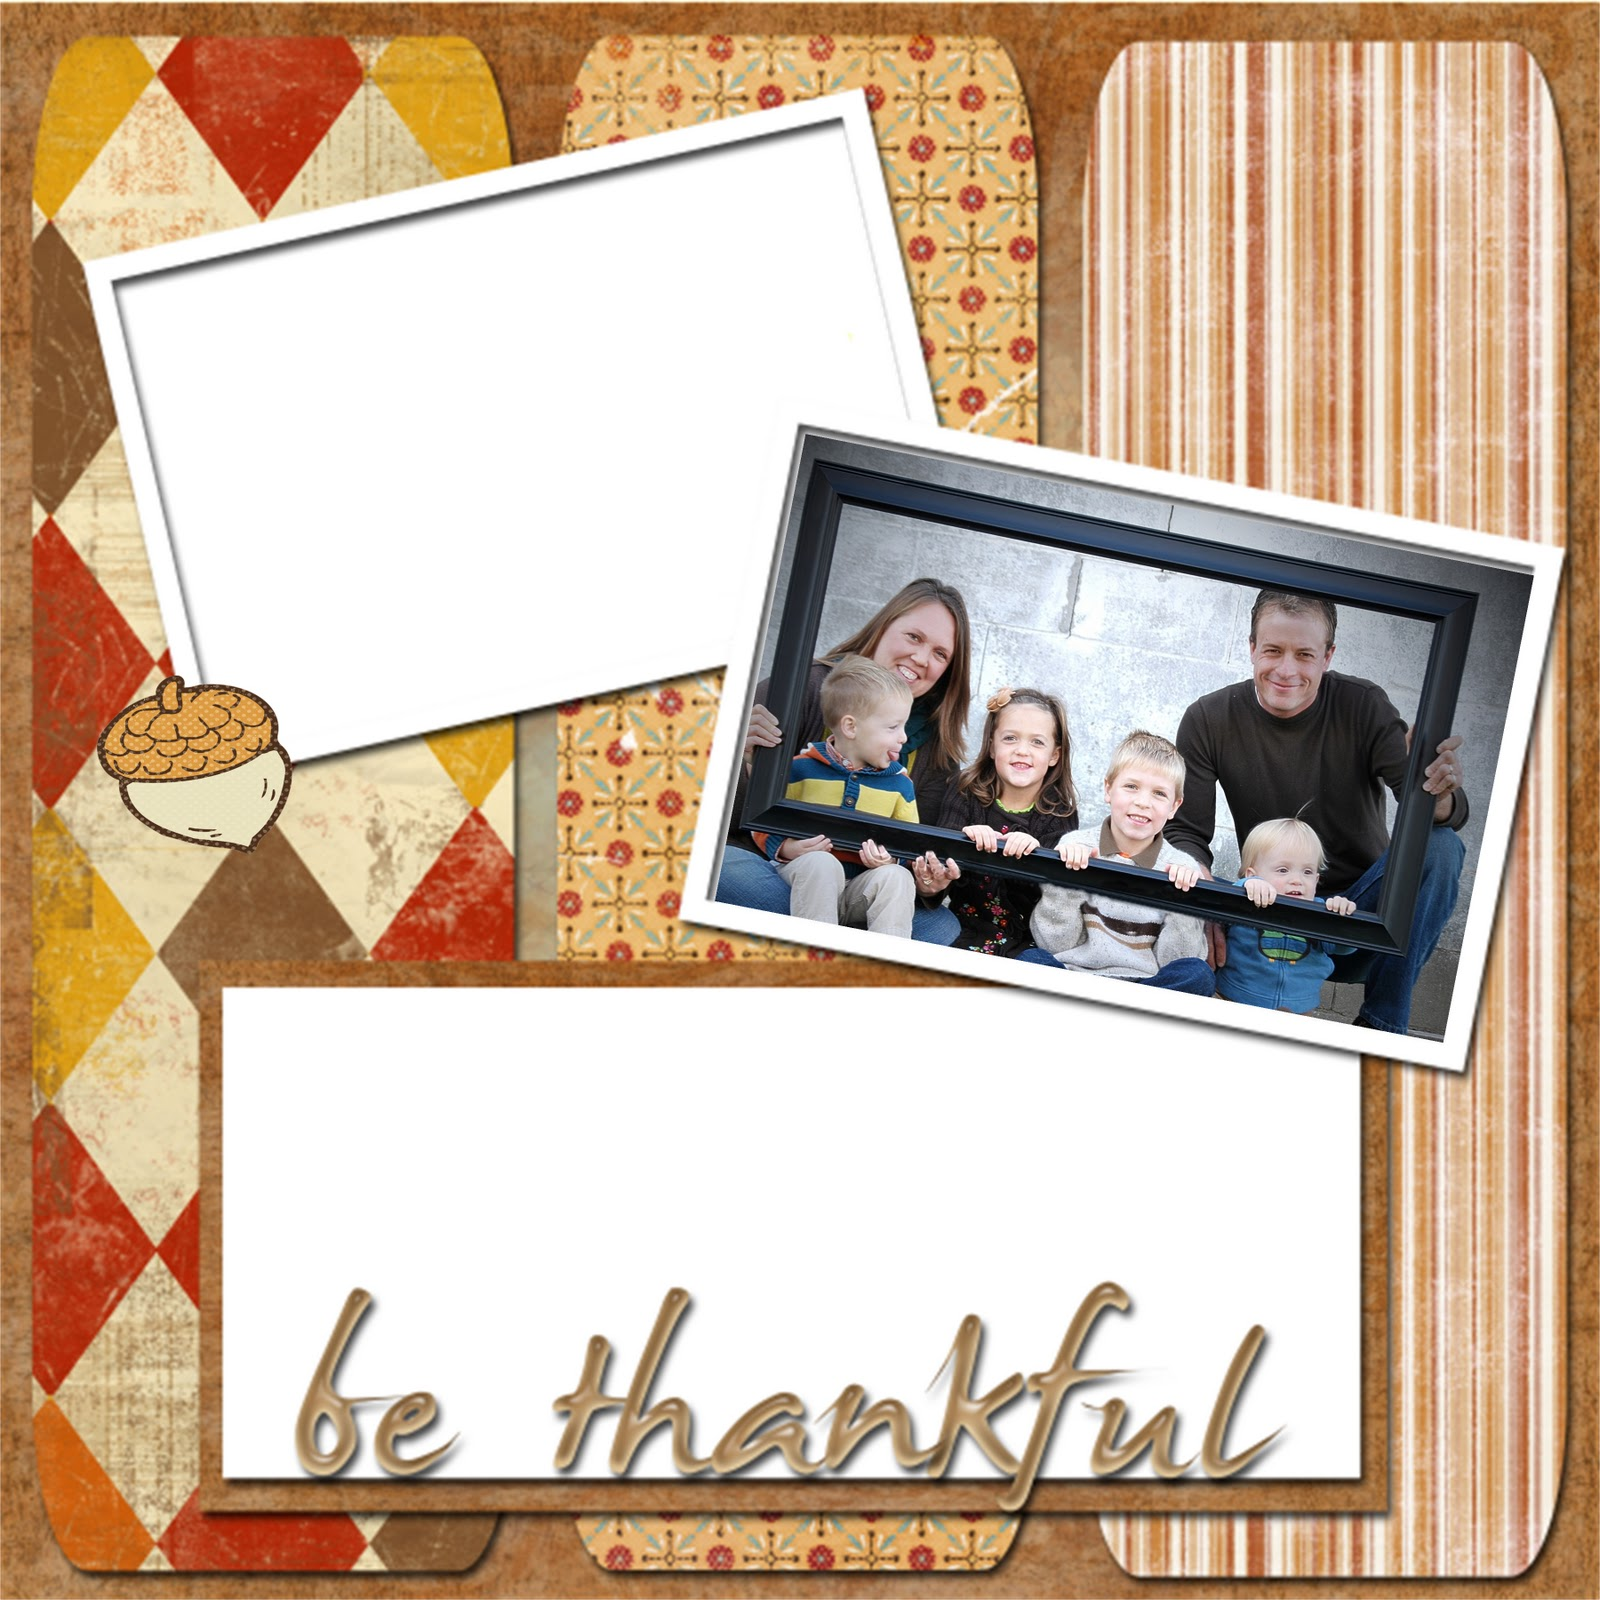 Scrapbook ideas abc album - Digital Scrapbooking Albums Also Offers An Abc Memory Book Ideal For Parents Of Preschool Age Children The Page Layouts Have Plenty Of Space For Picturing